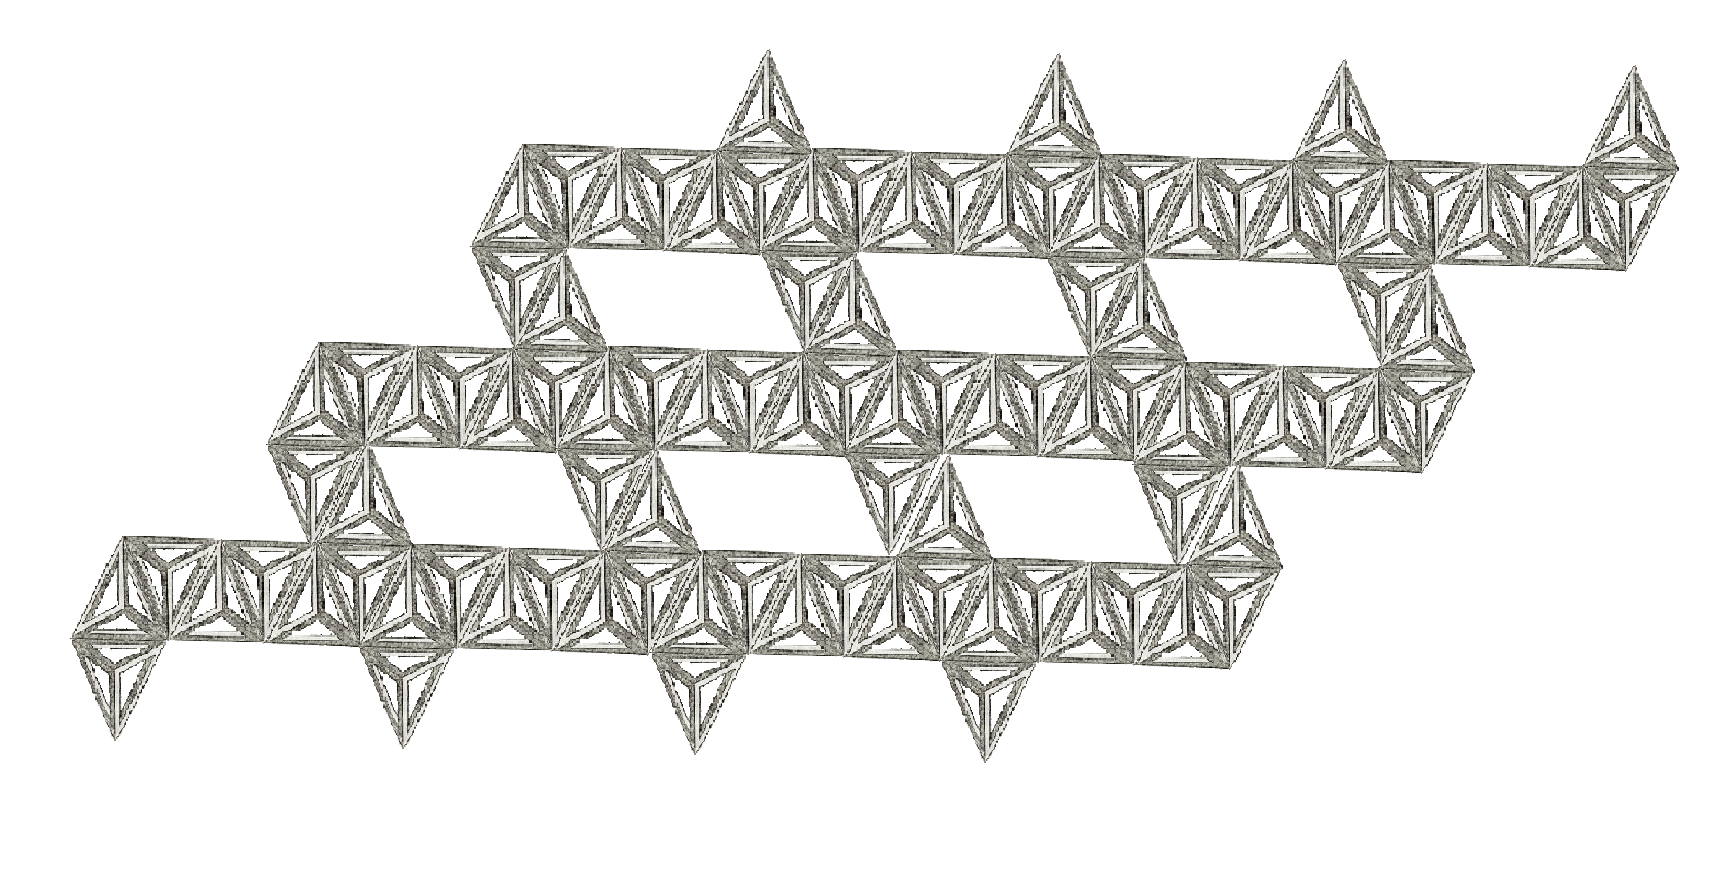 Tetrahedral basic units in chain hellix connection.